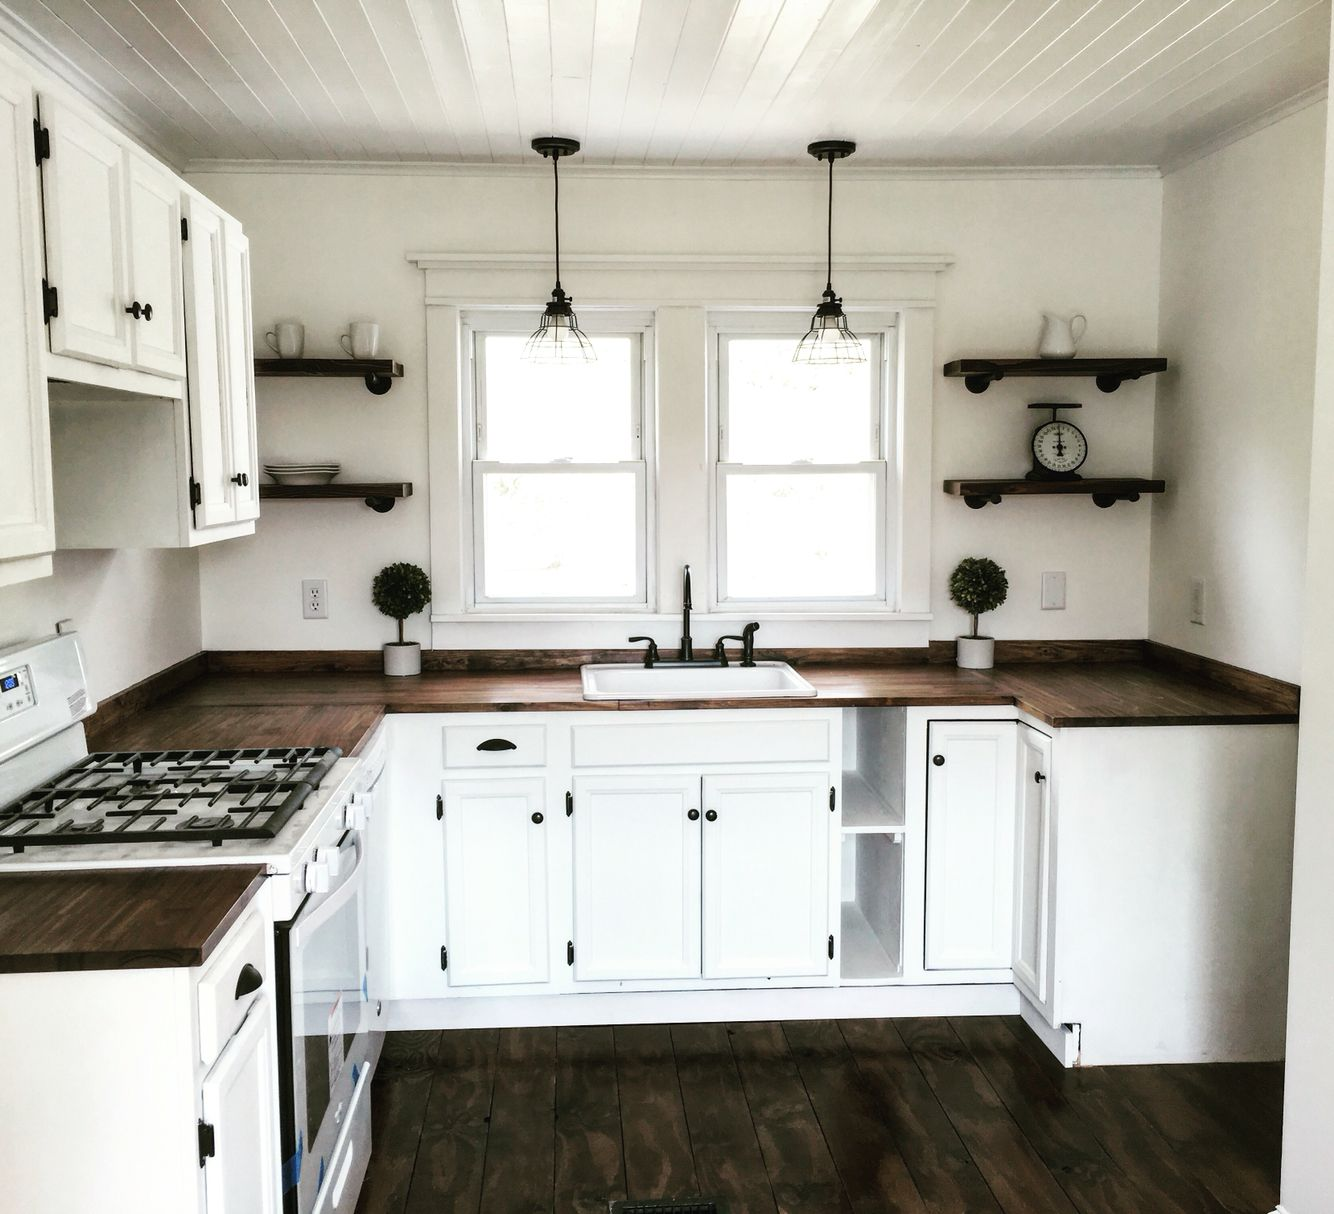 Farmhouse Kitchen On The Cheap! Cabinets From Craigslist